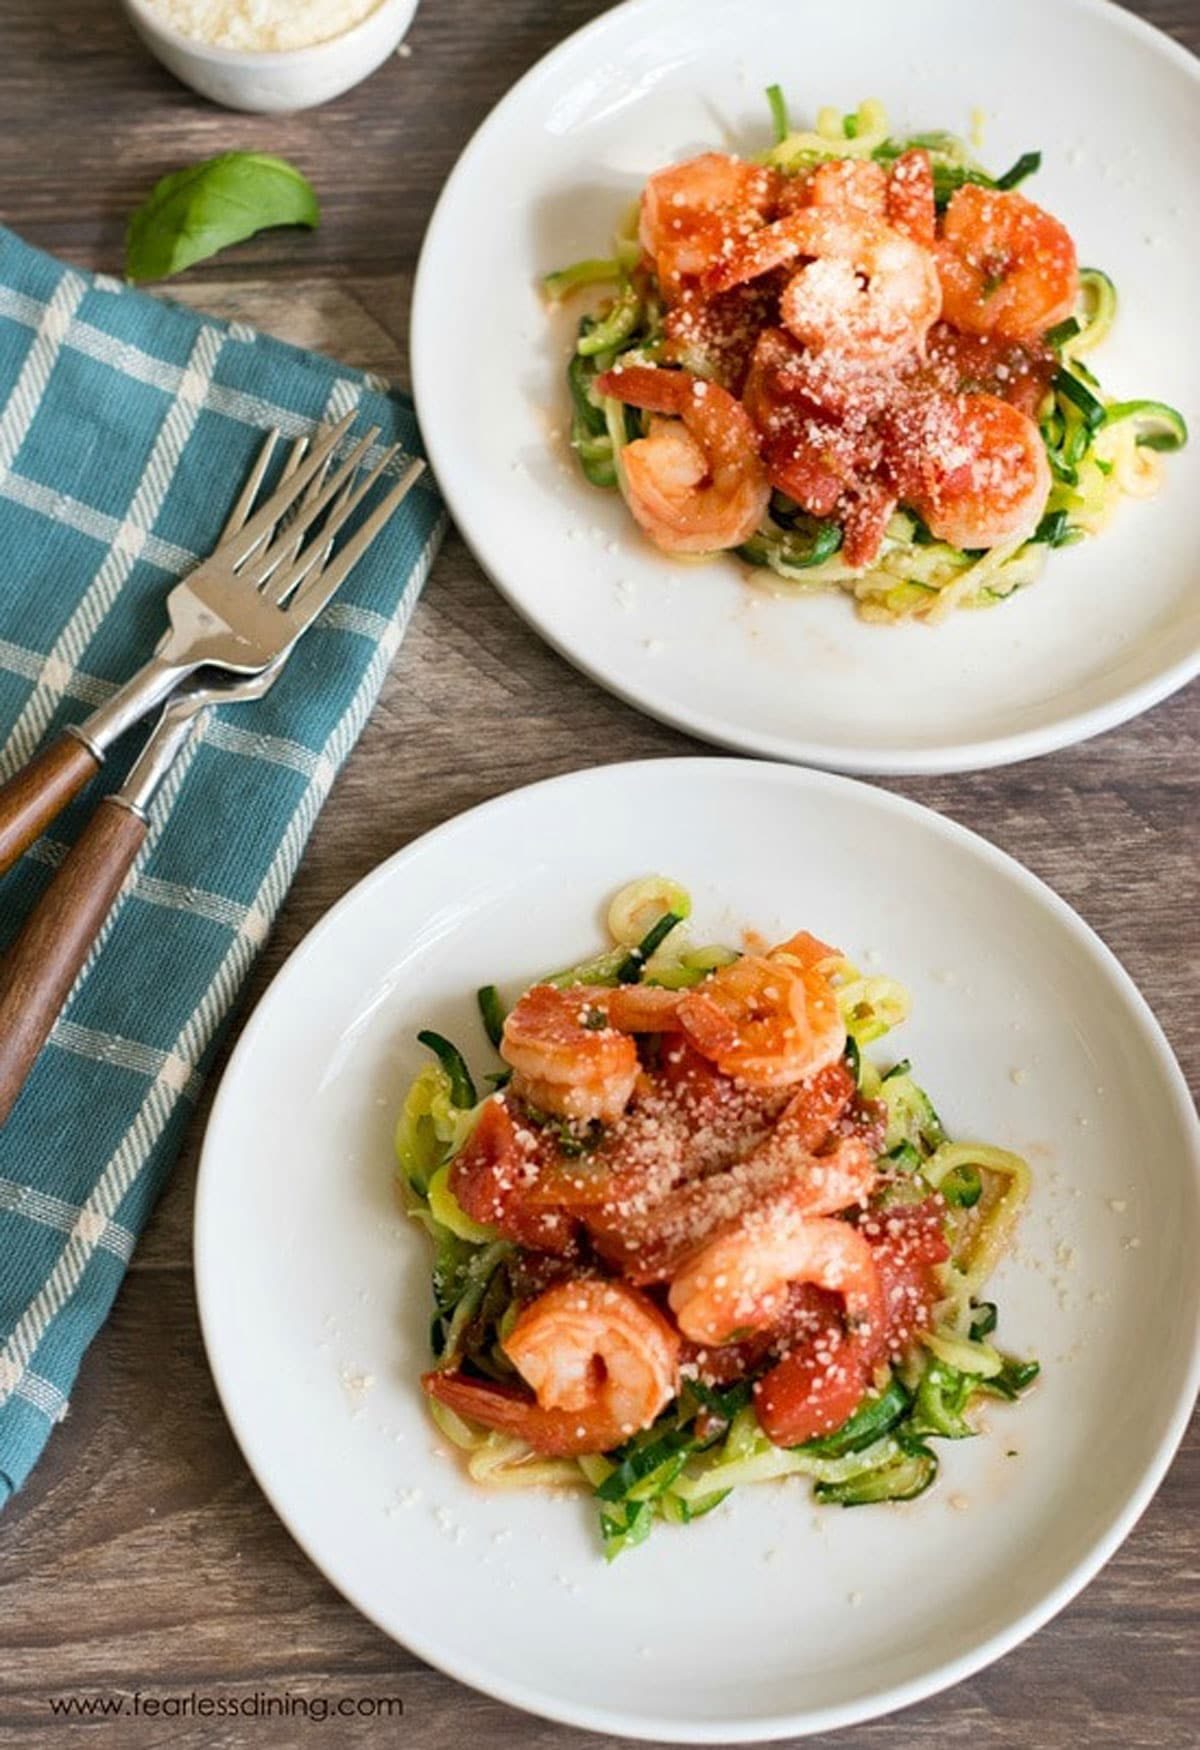 a top view of two plates of shrimp fra diavolo